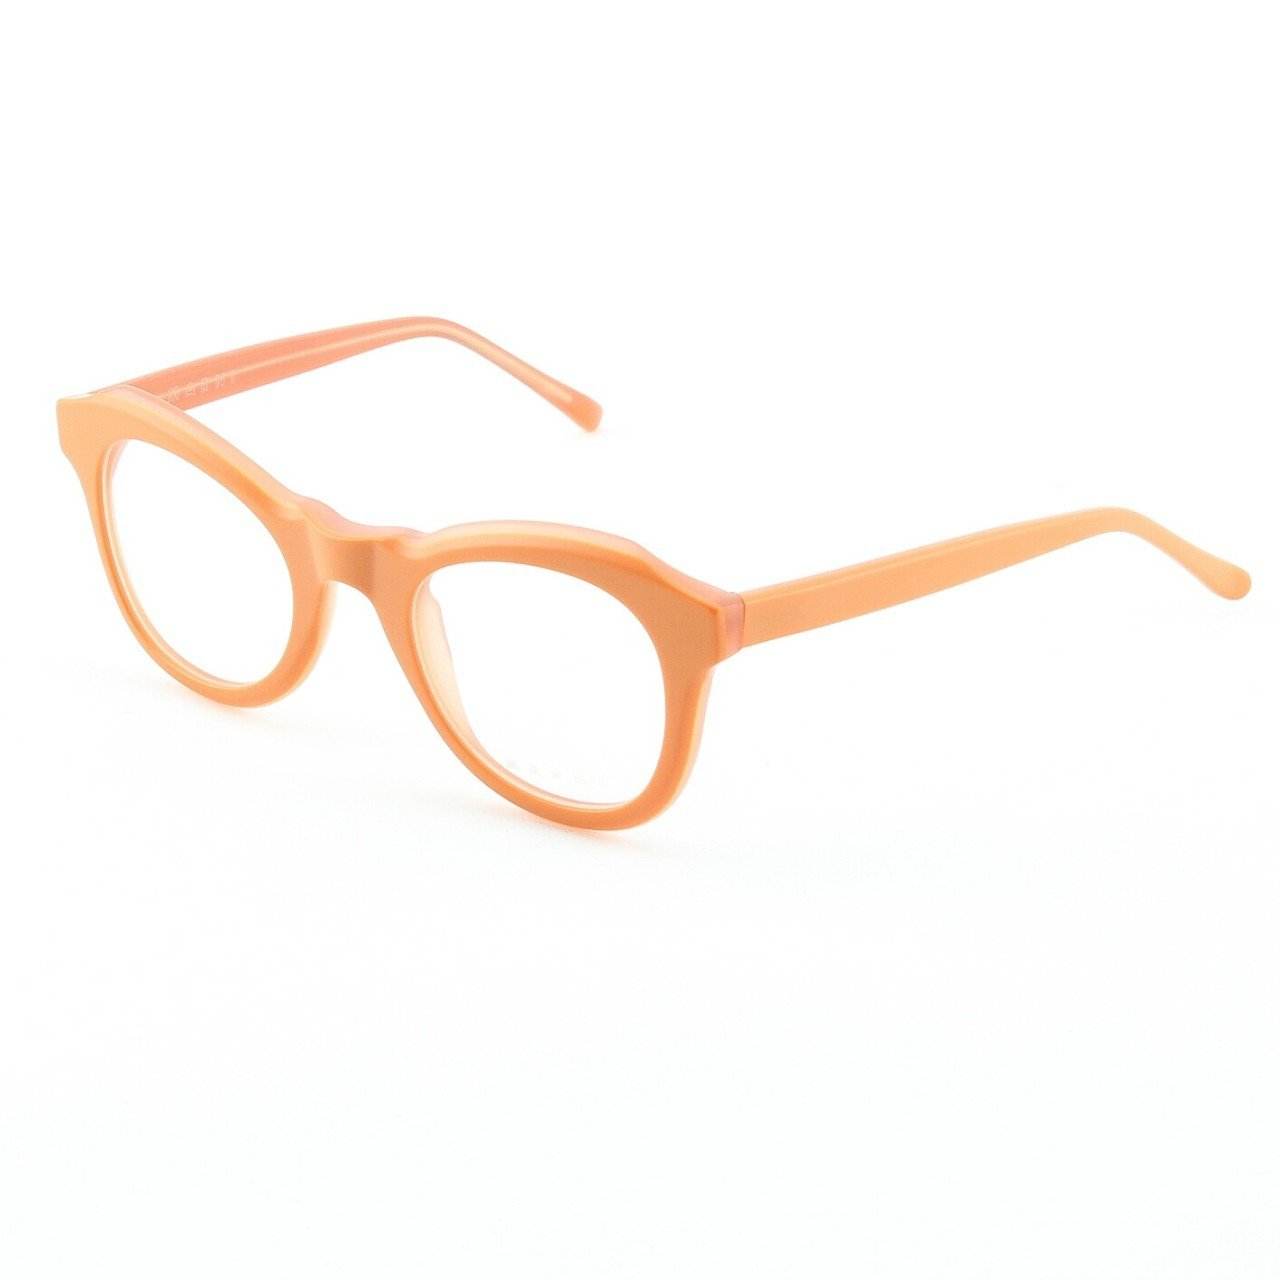 Marni MA699 Eyeglasses Col. 04 Frosted Orange with Clear Lenses